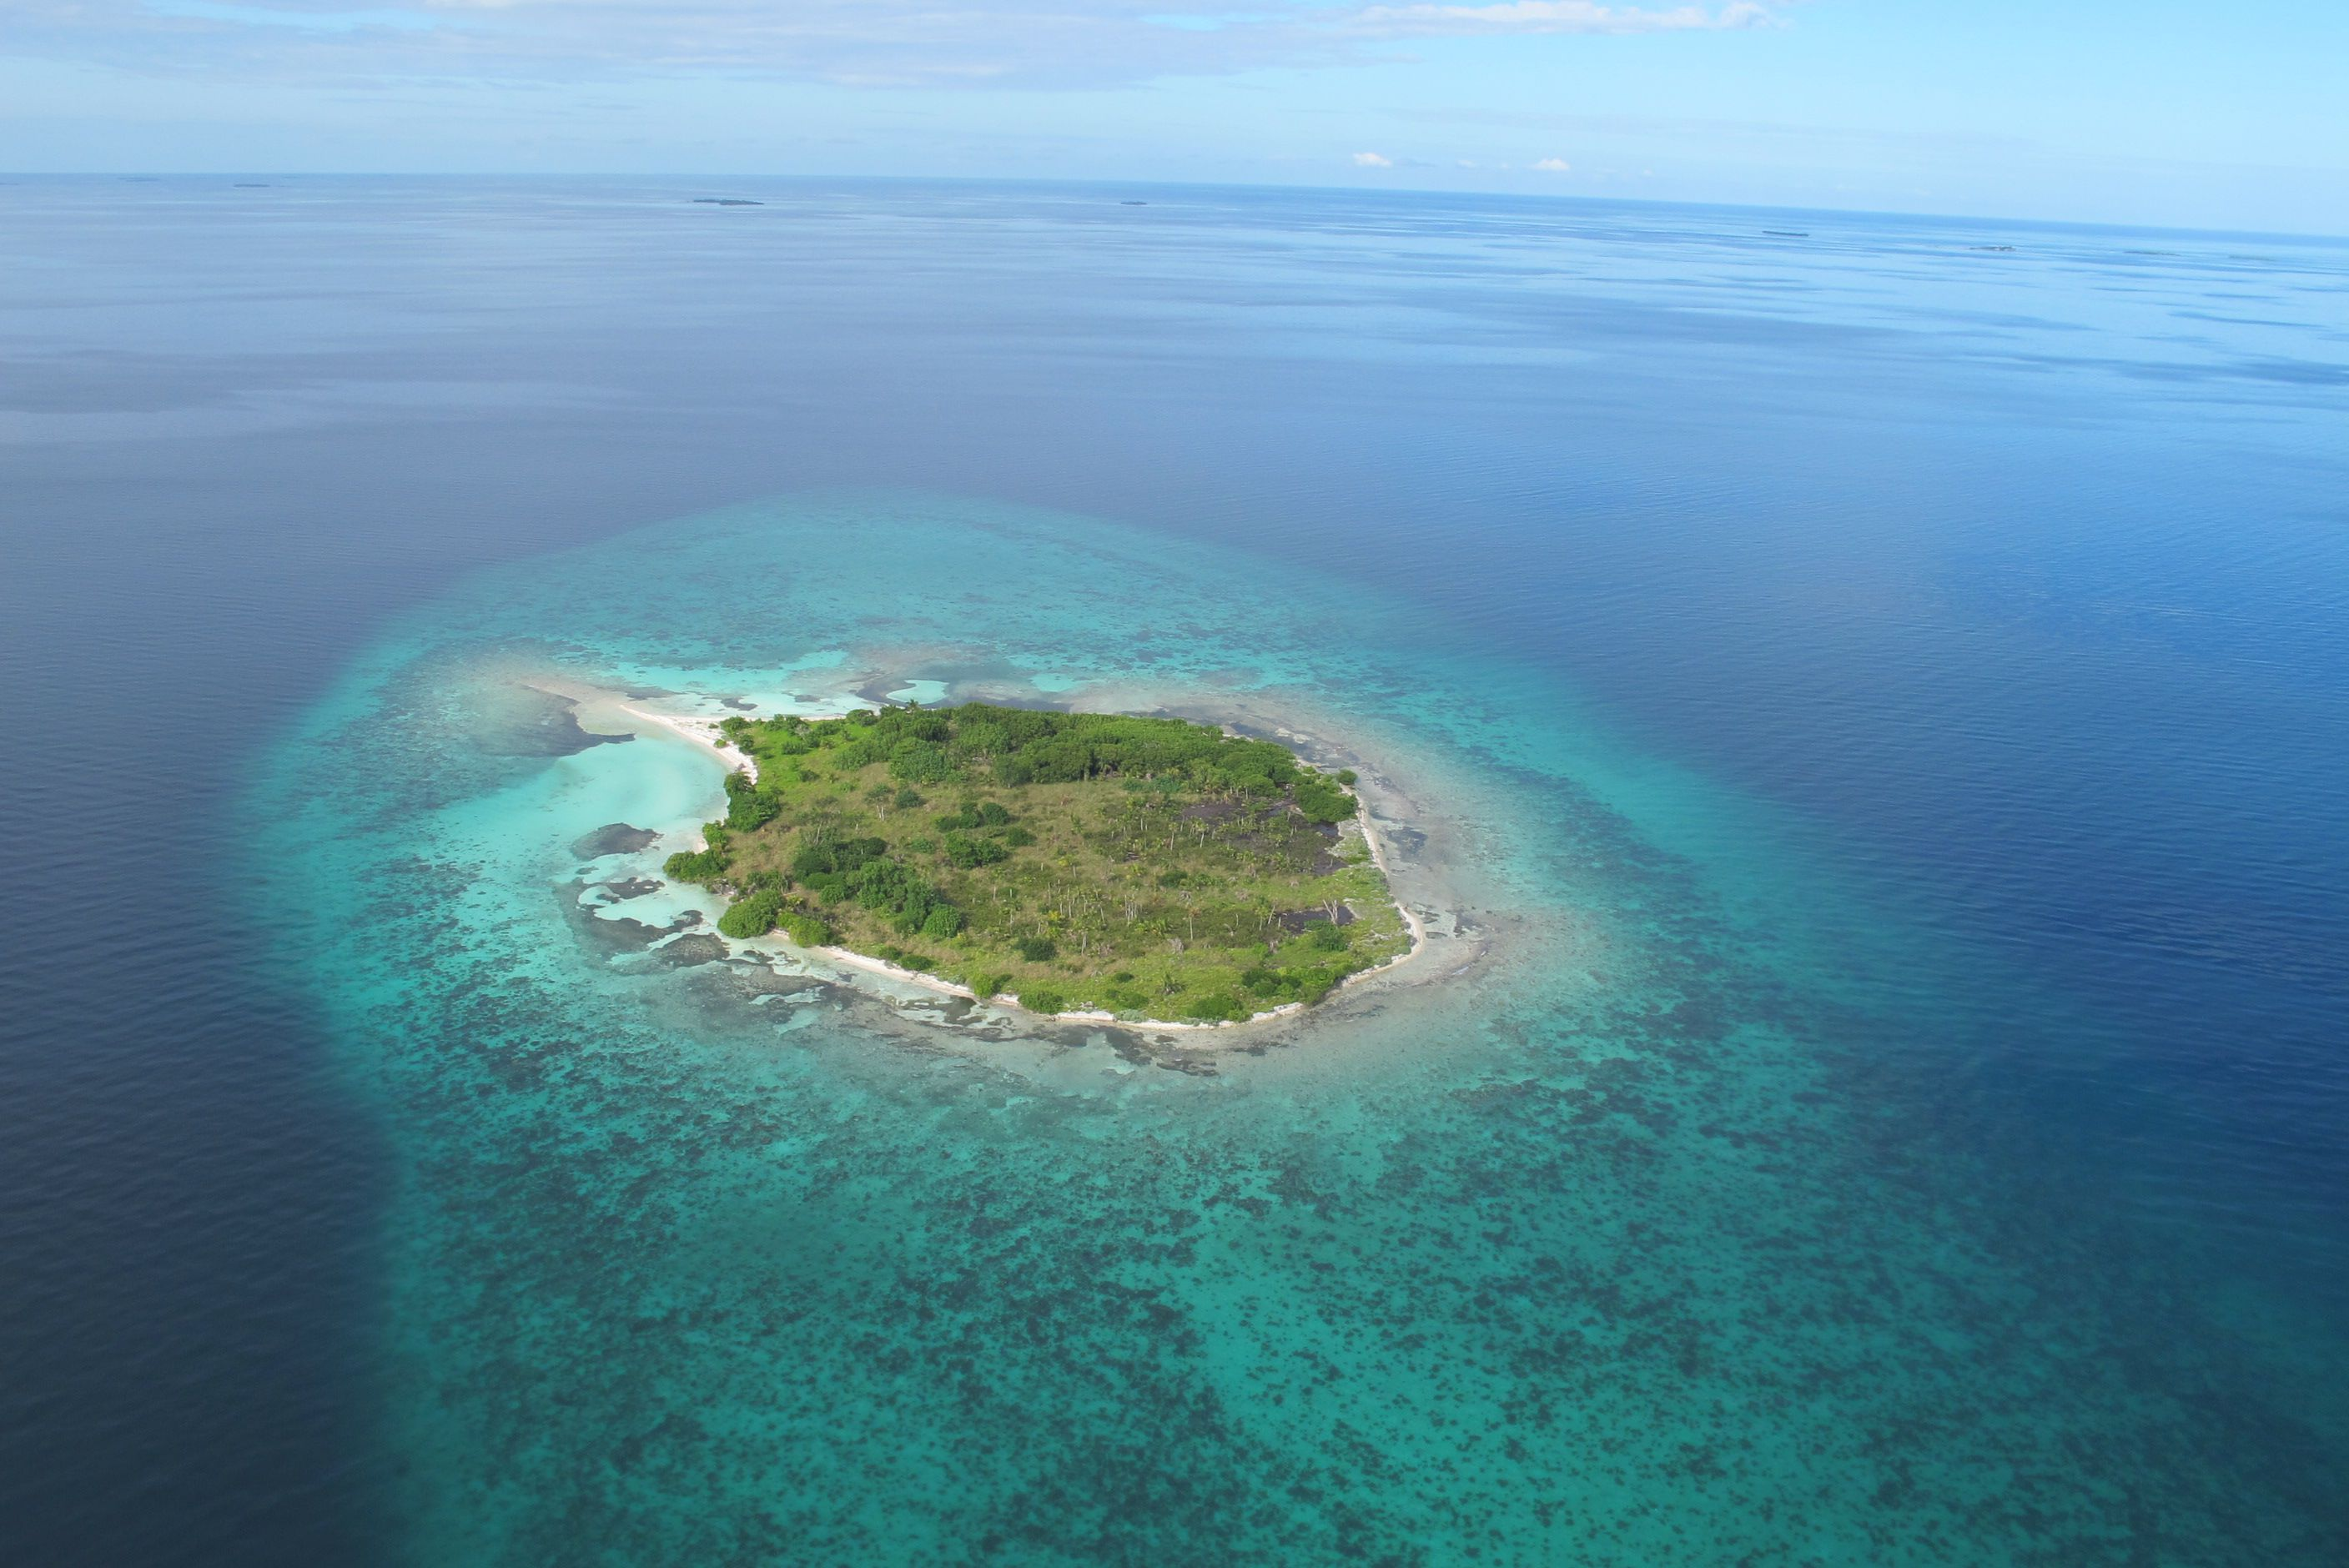 Private Islands for Sale | Island Real Estate | Buy an